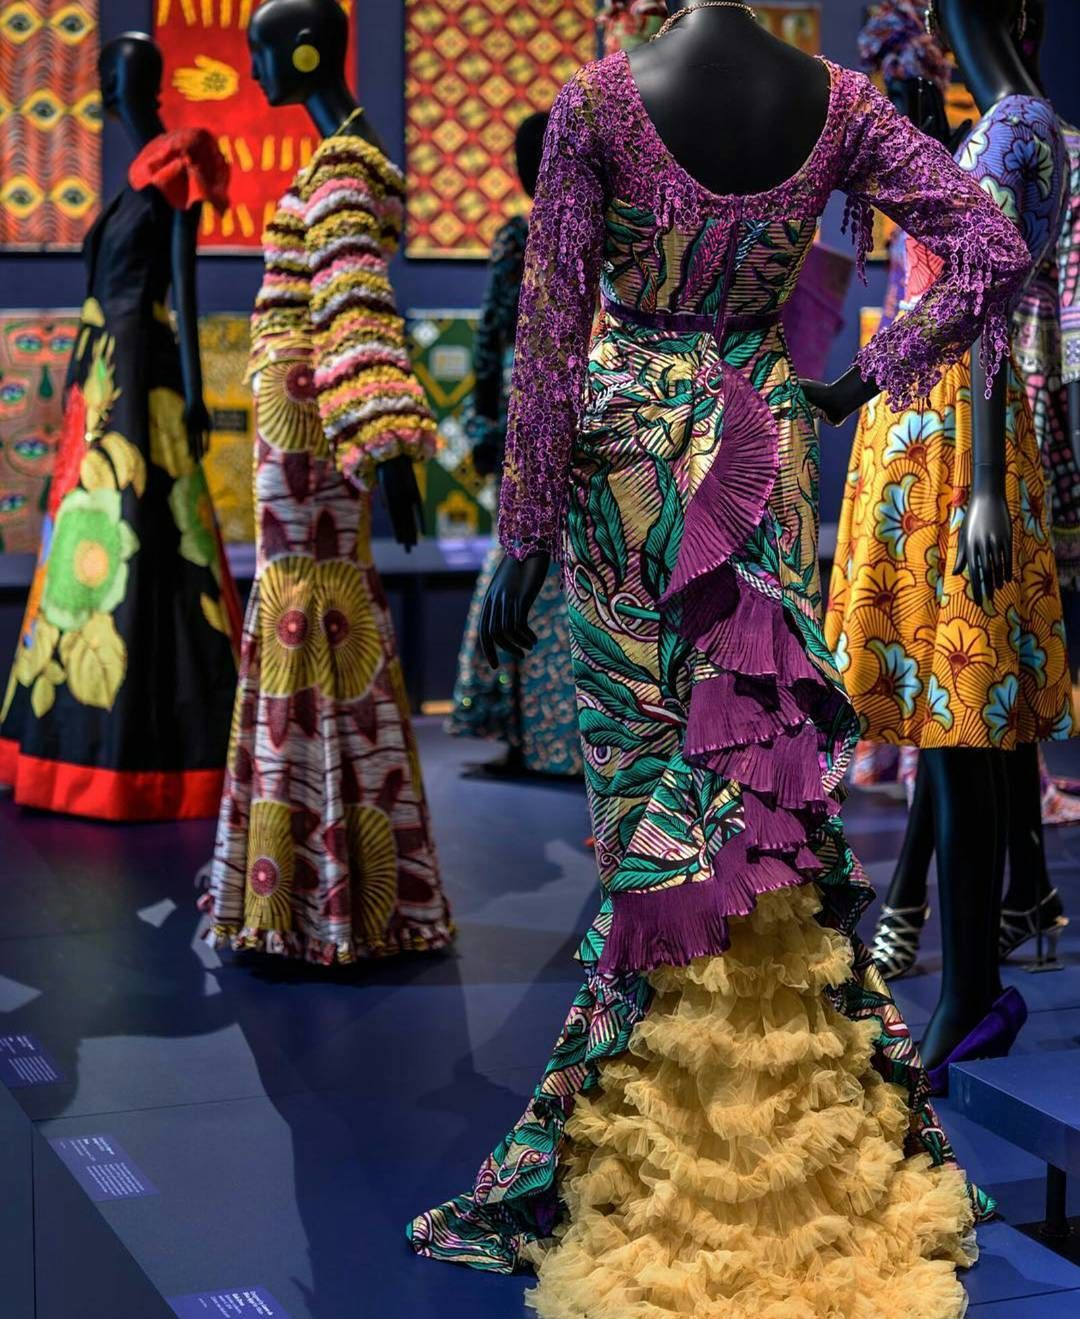 Vlisco: African Fashion on a Global Stage. @philamuseum #vlisco #fashion #style #textile #africanfashion